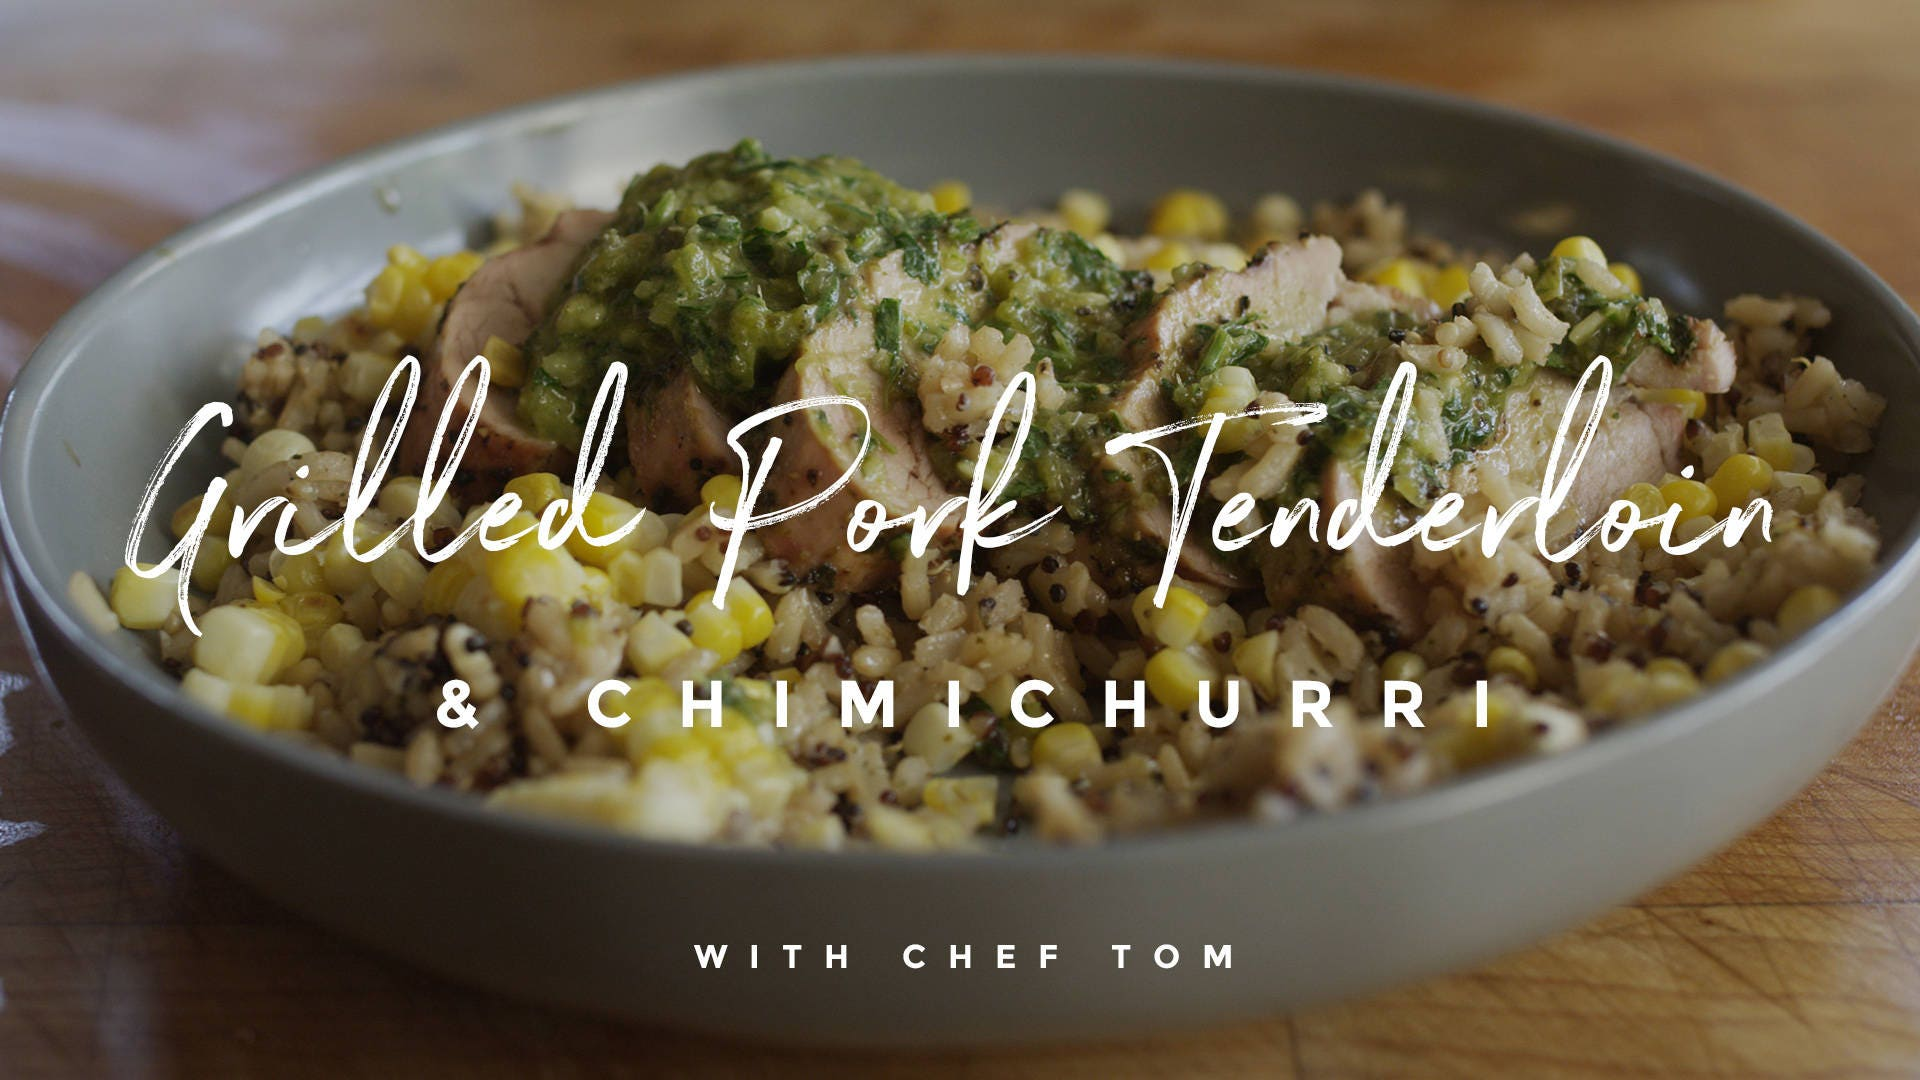 How to make Pork Tenderloin & Grilled Chimichurri